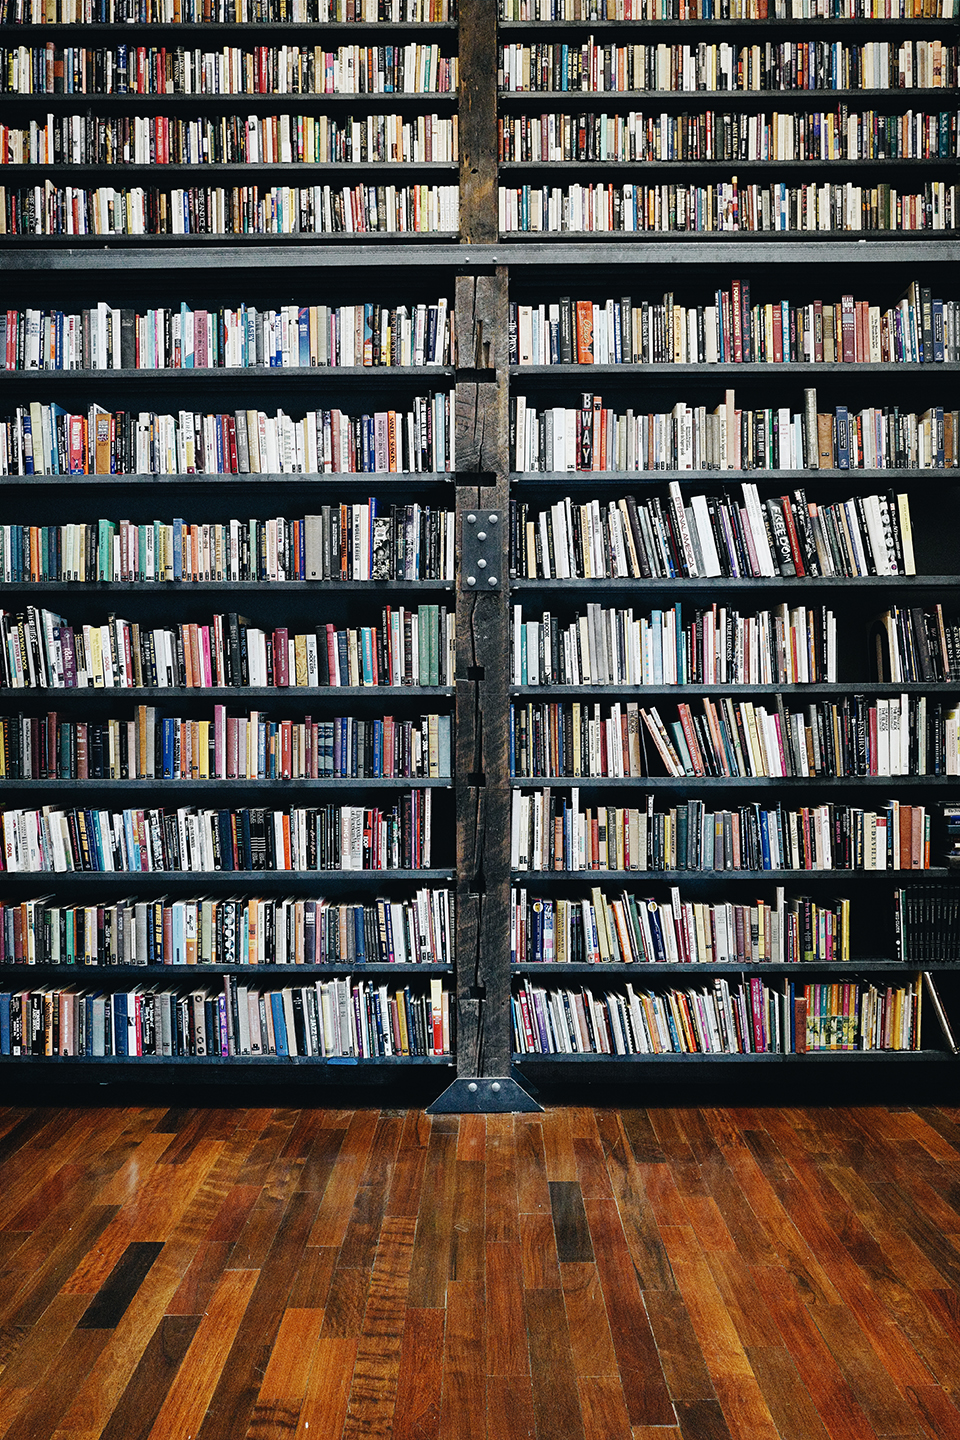 Stony Island Arts Bank's Johnson Publishing Company Library